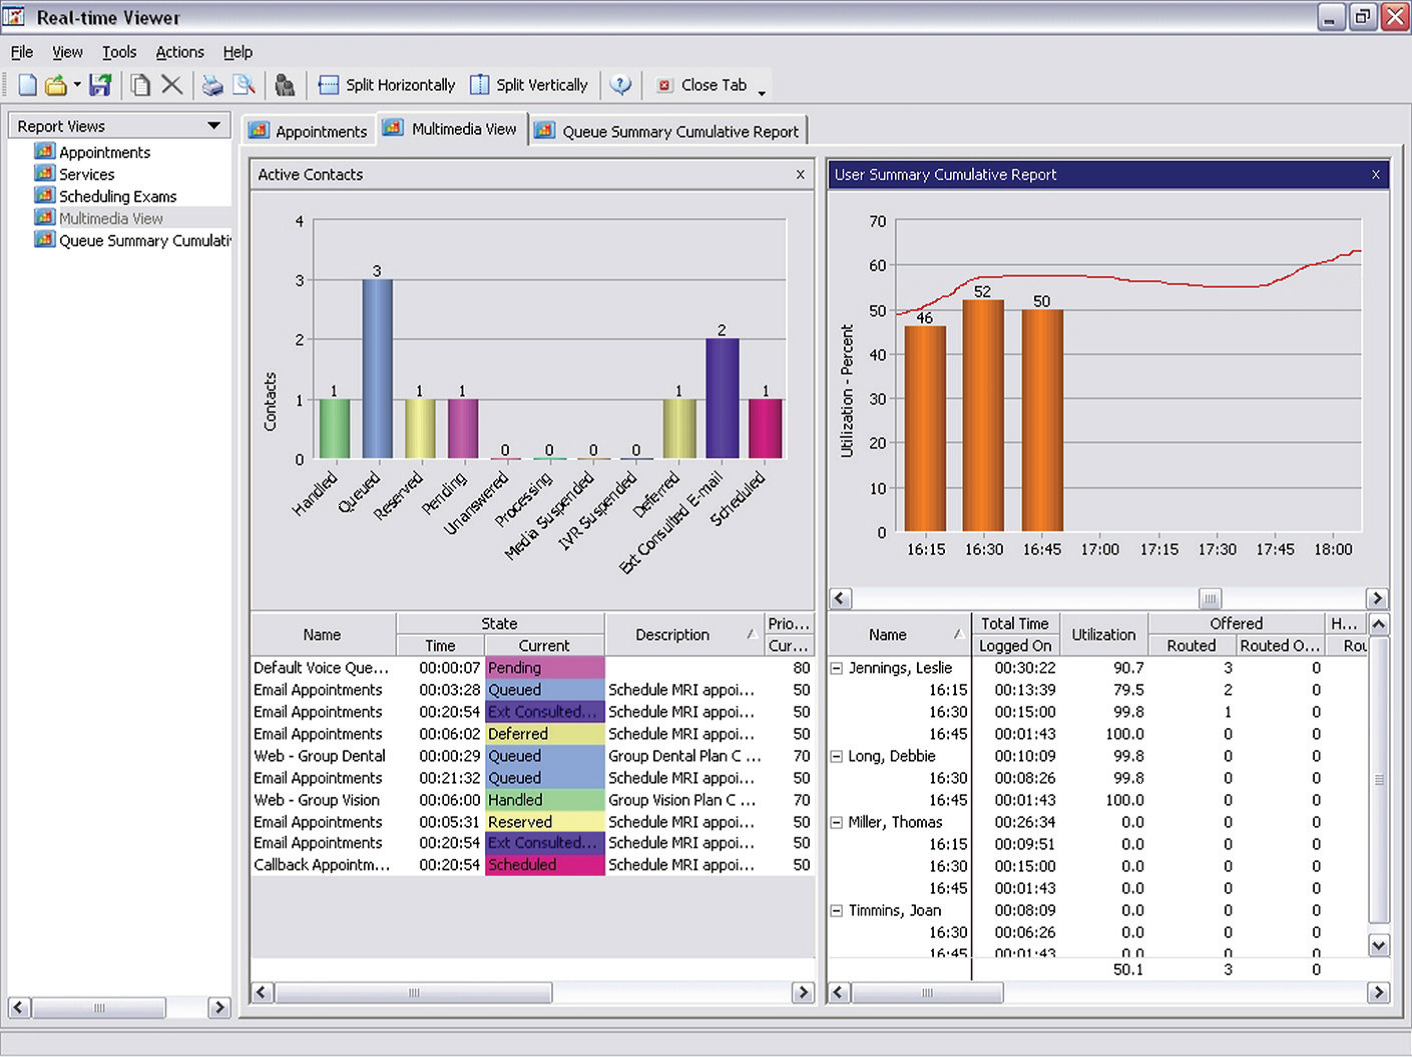 Enterprise CC - Report Center  Real-Time Viewer